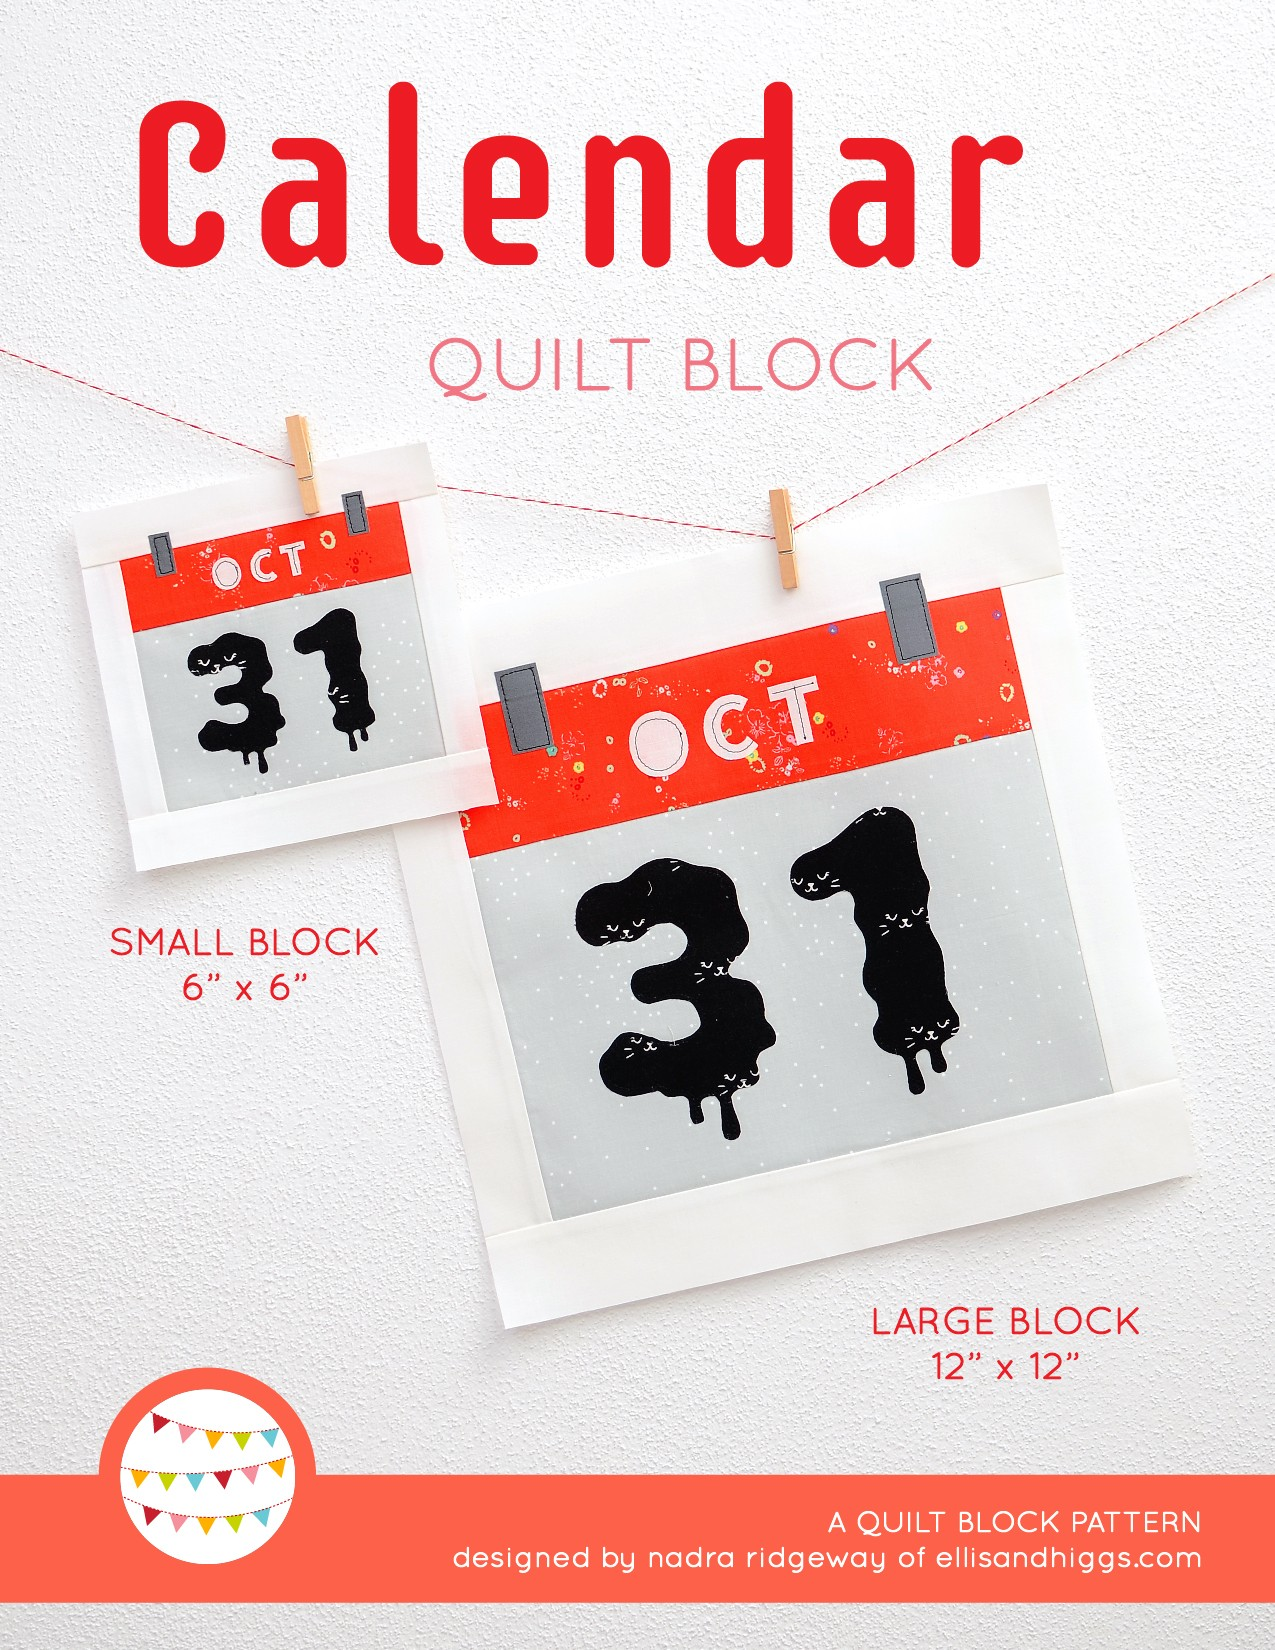 Calendar quilt block in two sizes hanging on a wall